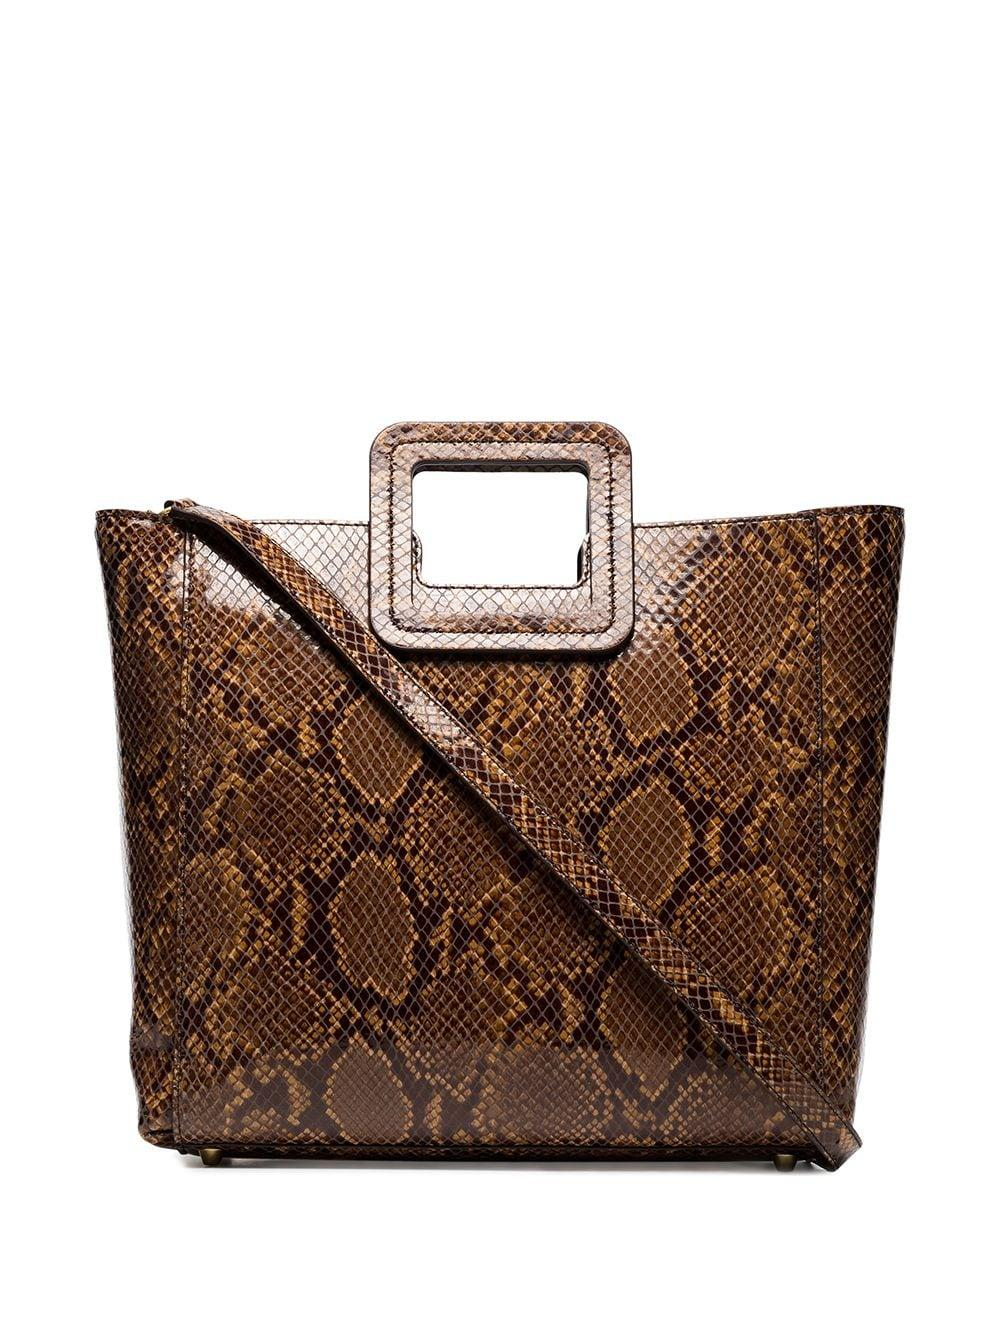 Shirley Bag Caramel Faux Snake